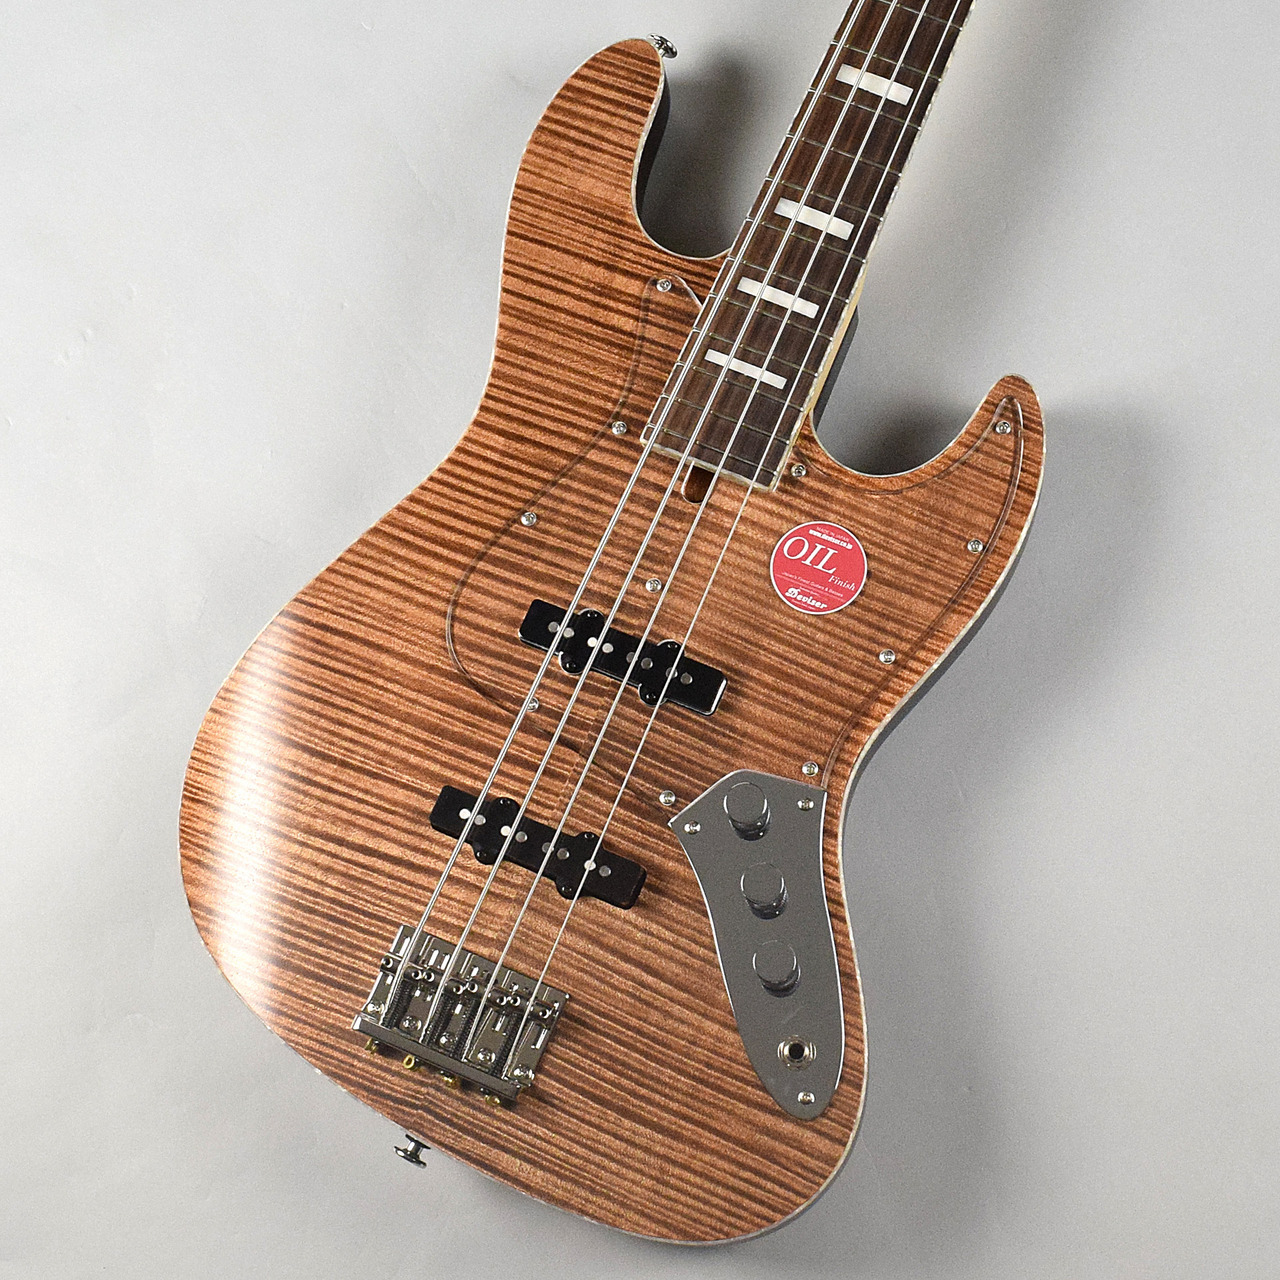 Bacchus Craft Series WL4-FM Custom/ R /OIL(BR)のボディバック-アップ画像